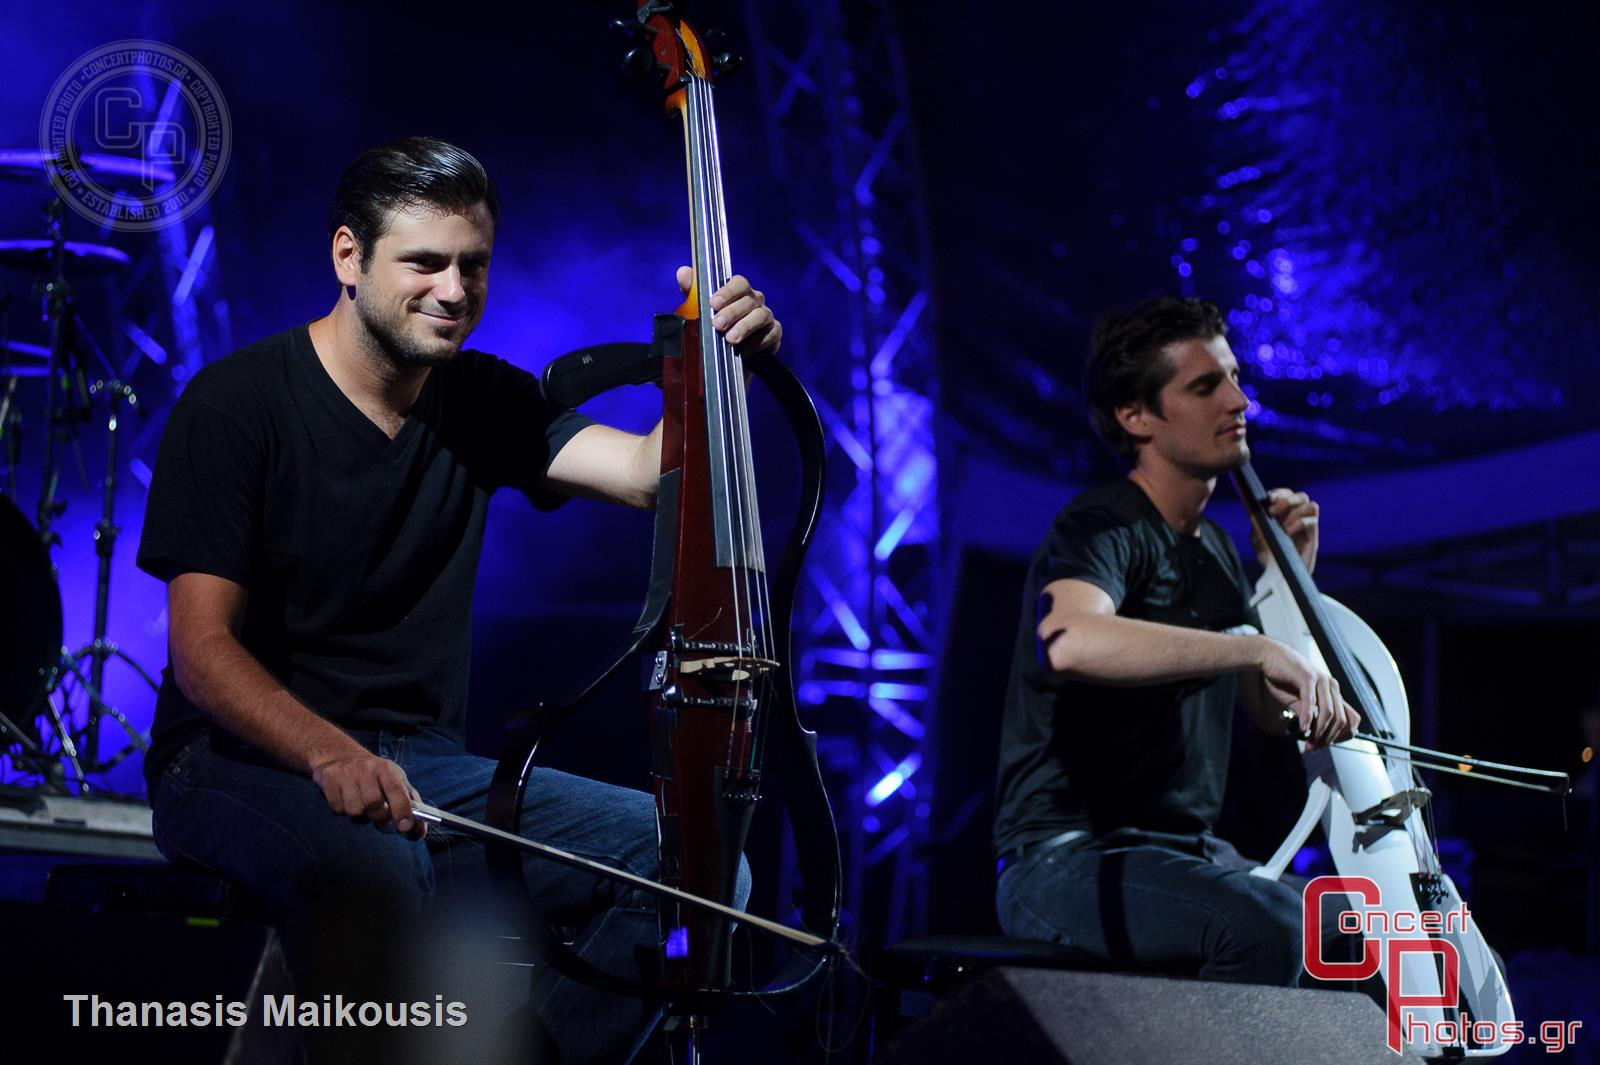 2Cellos-2Cellos Technopolis photographer: Thanasis Maikousis - untitled shoot-6052